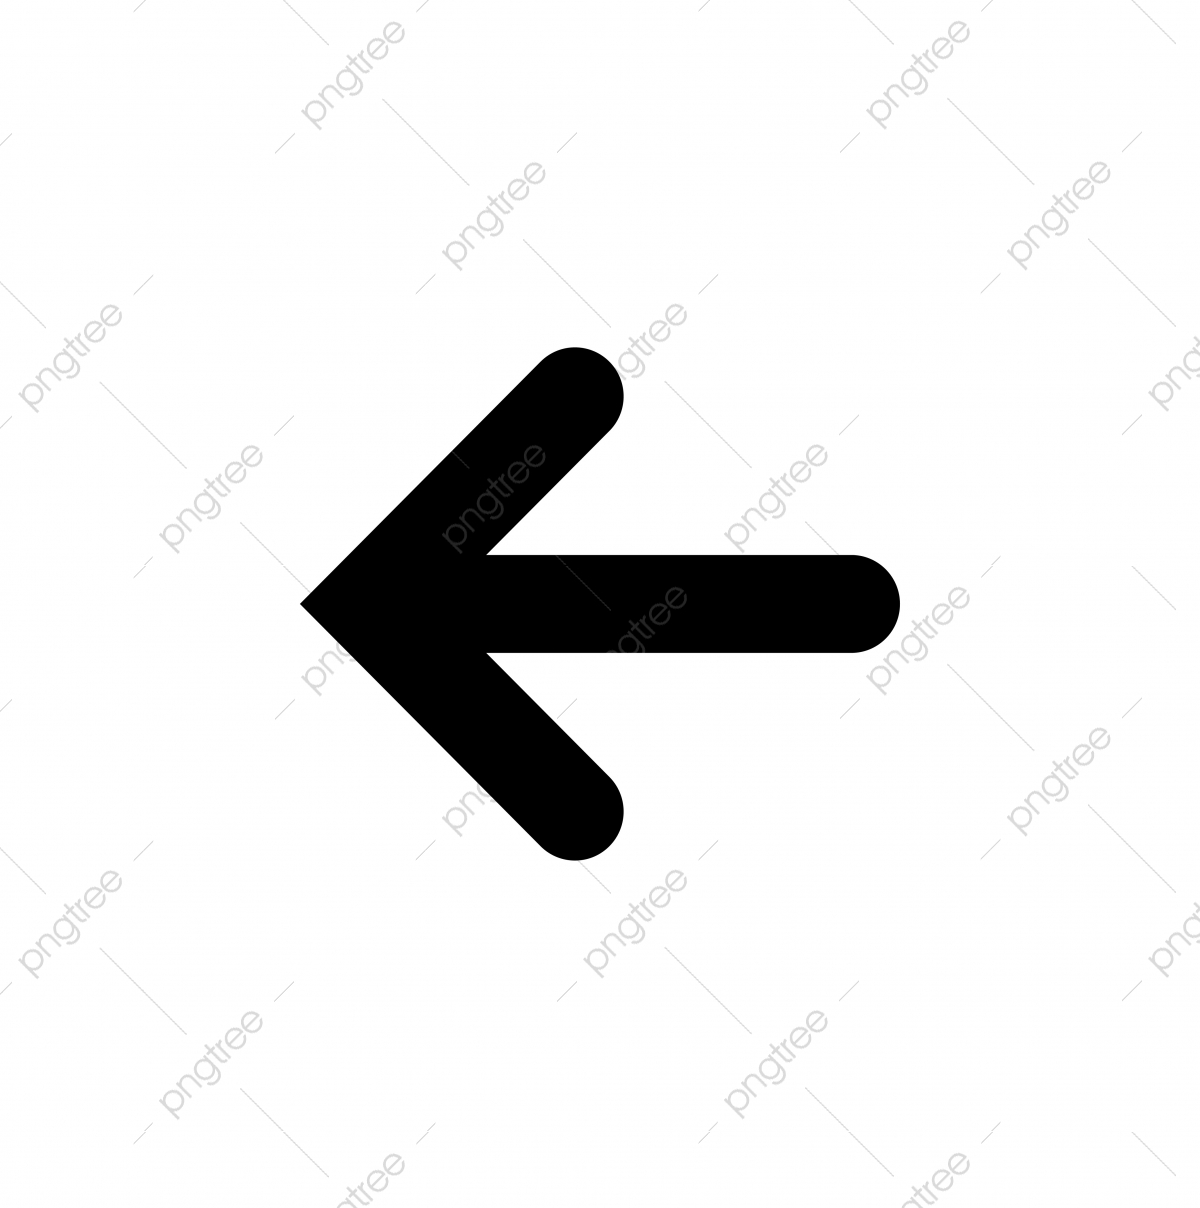 Arrow, Shadow, Left Arrow PNG Transparent Clipart Image and.